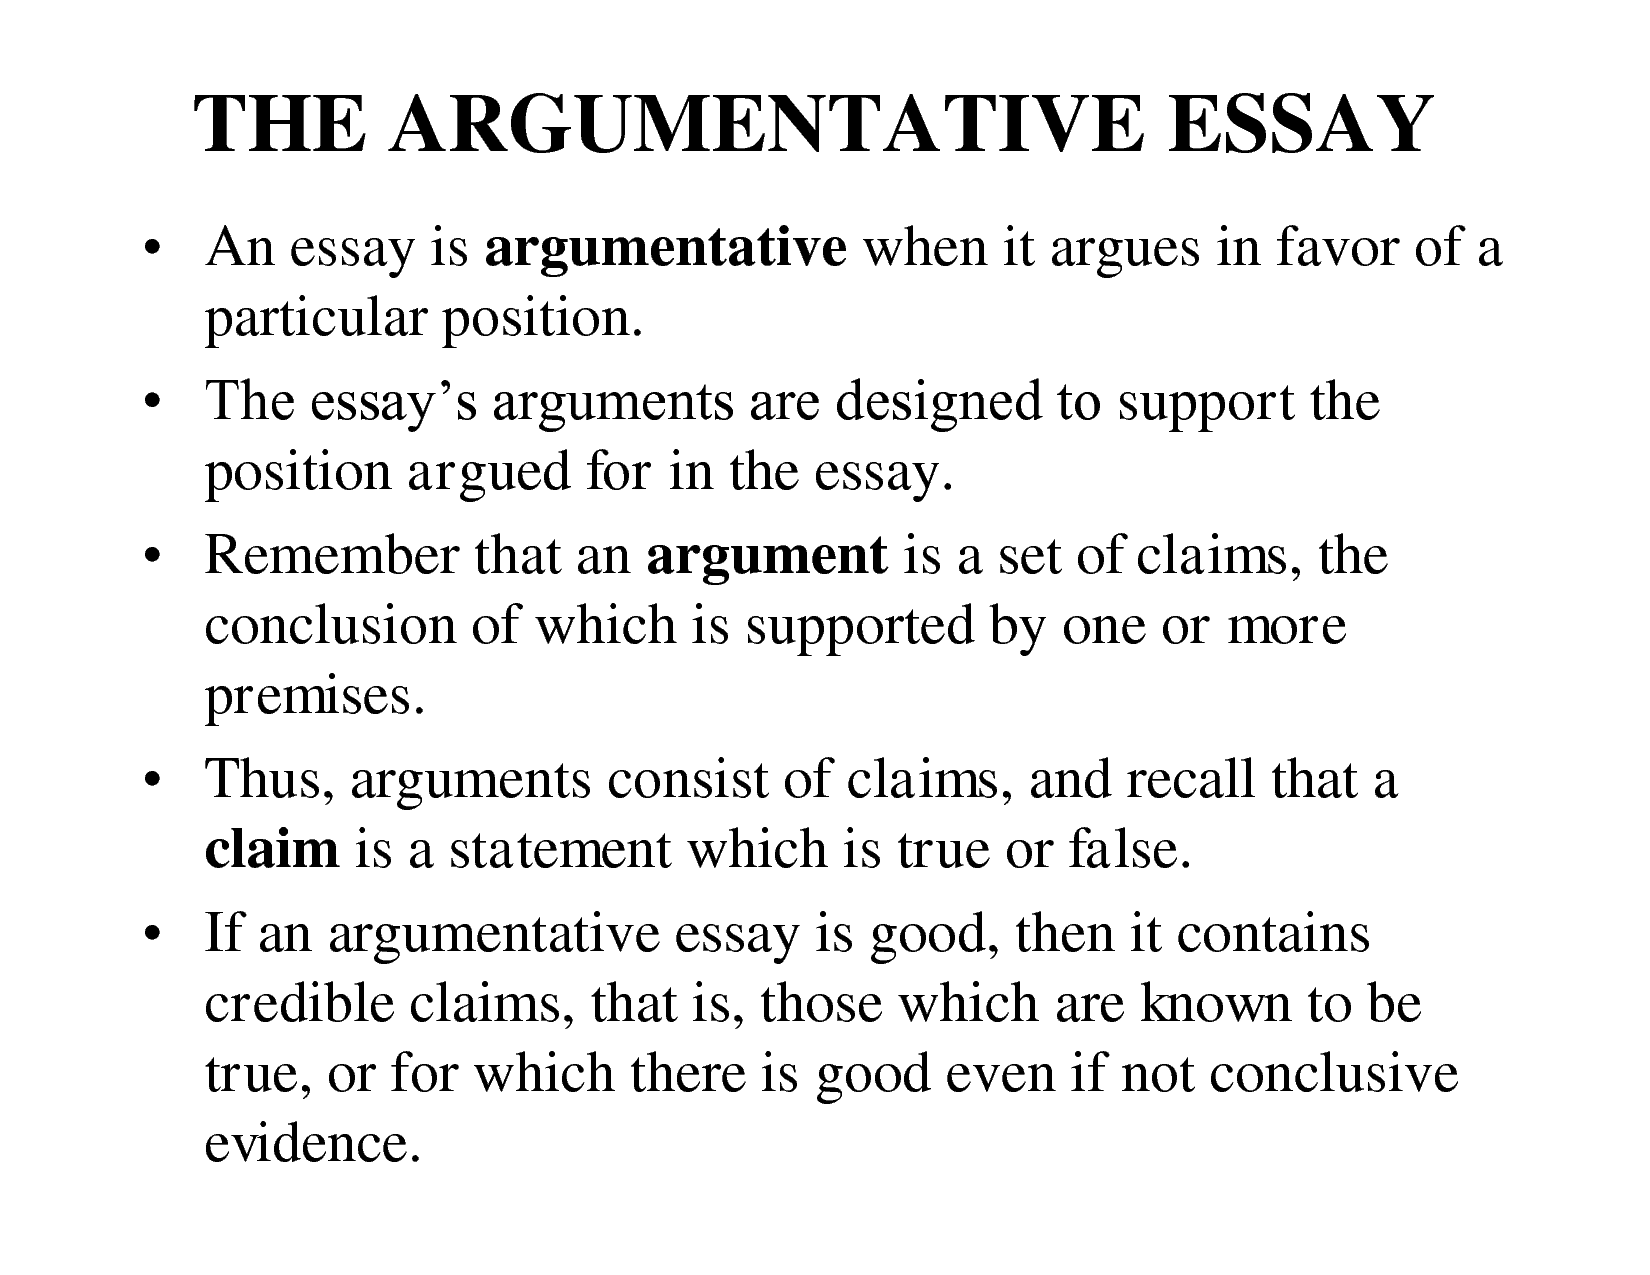 argument essay structure Essay structure  you need to present a clear argument in your essay, and i f you organise your ideas in a structured way, that will help to present your argument clearly.